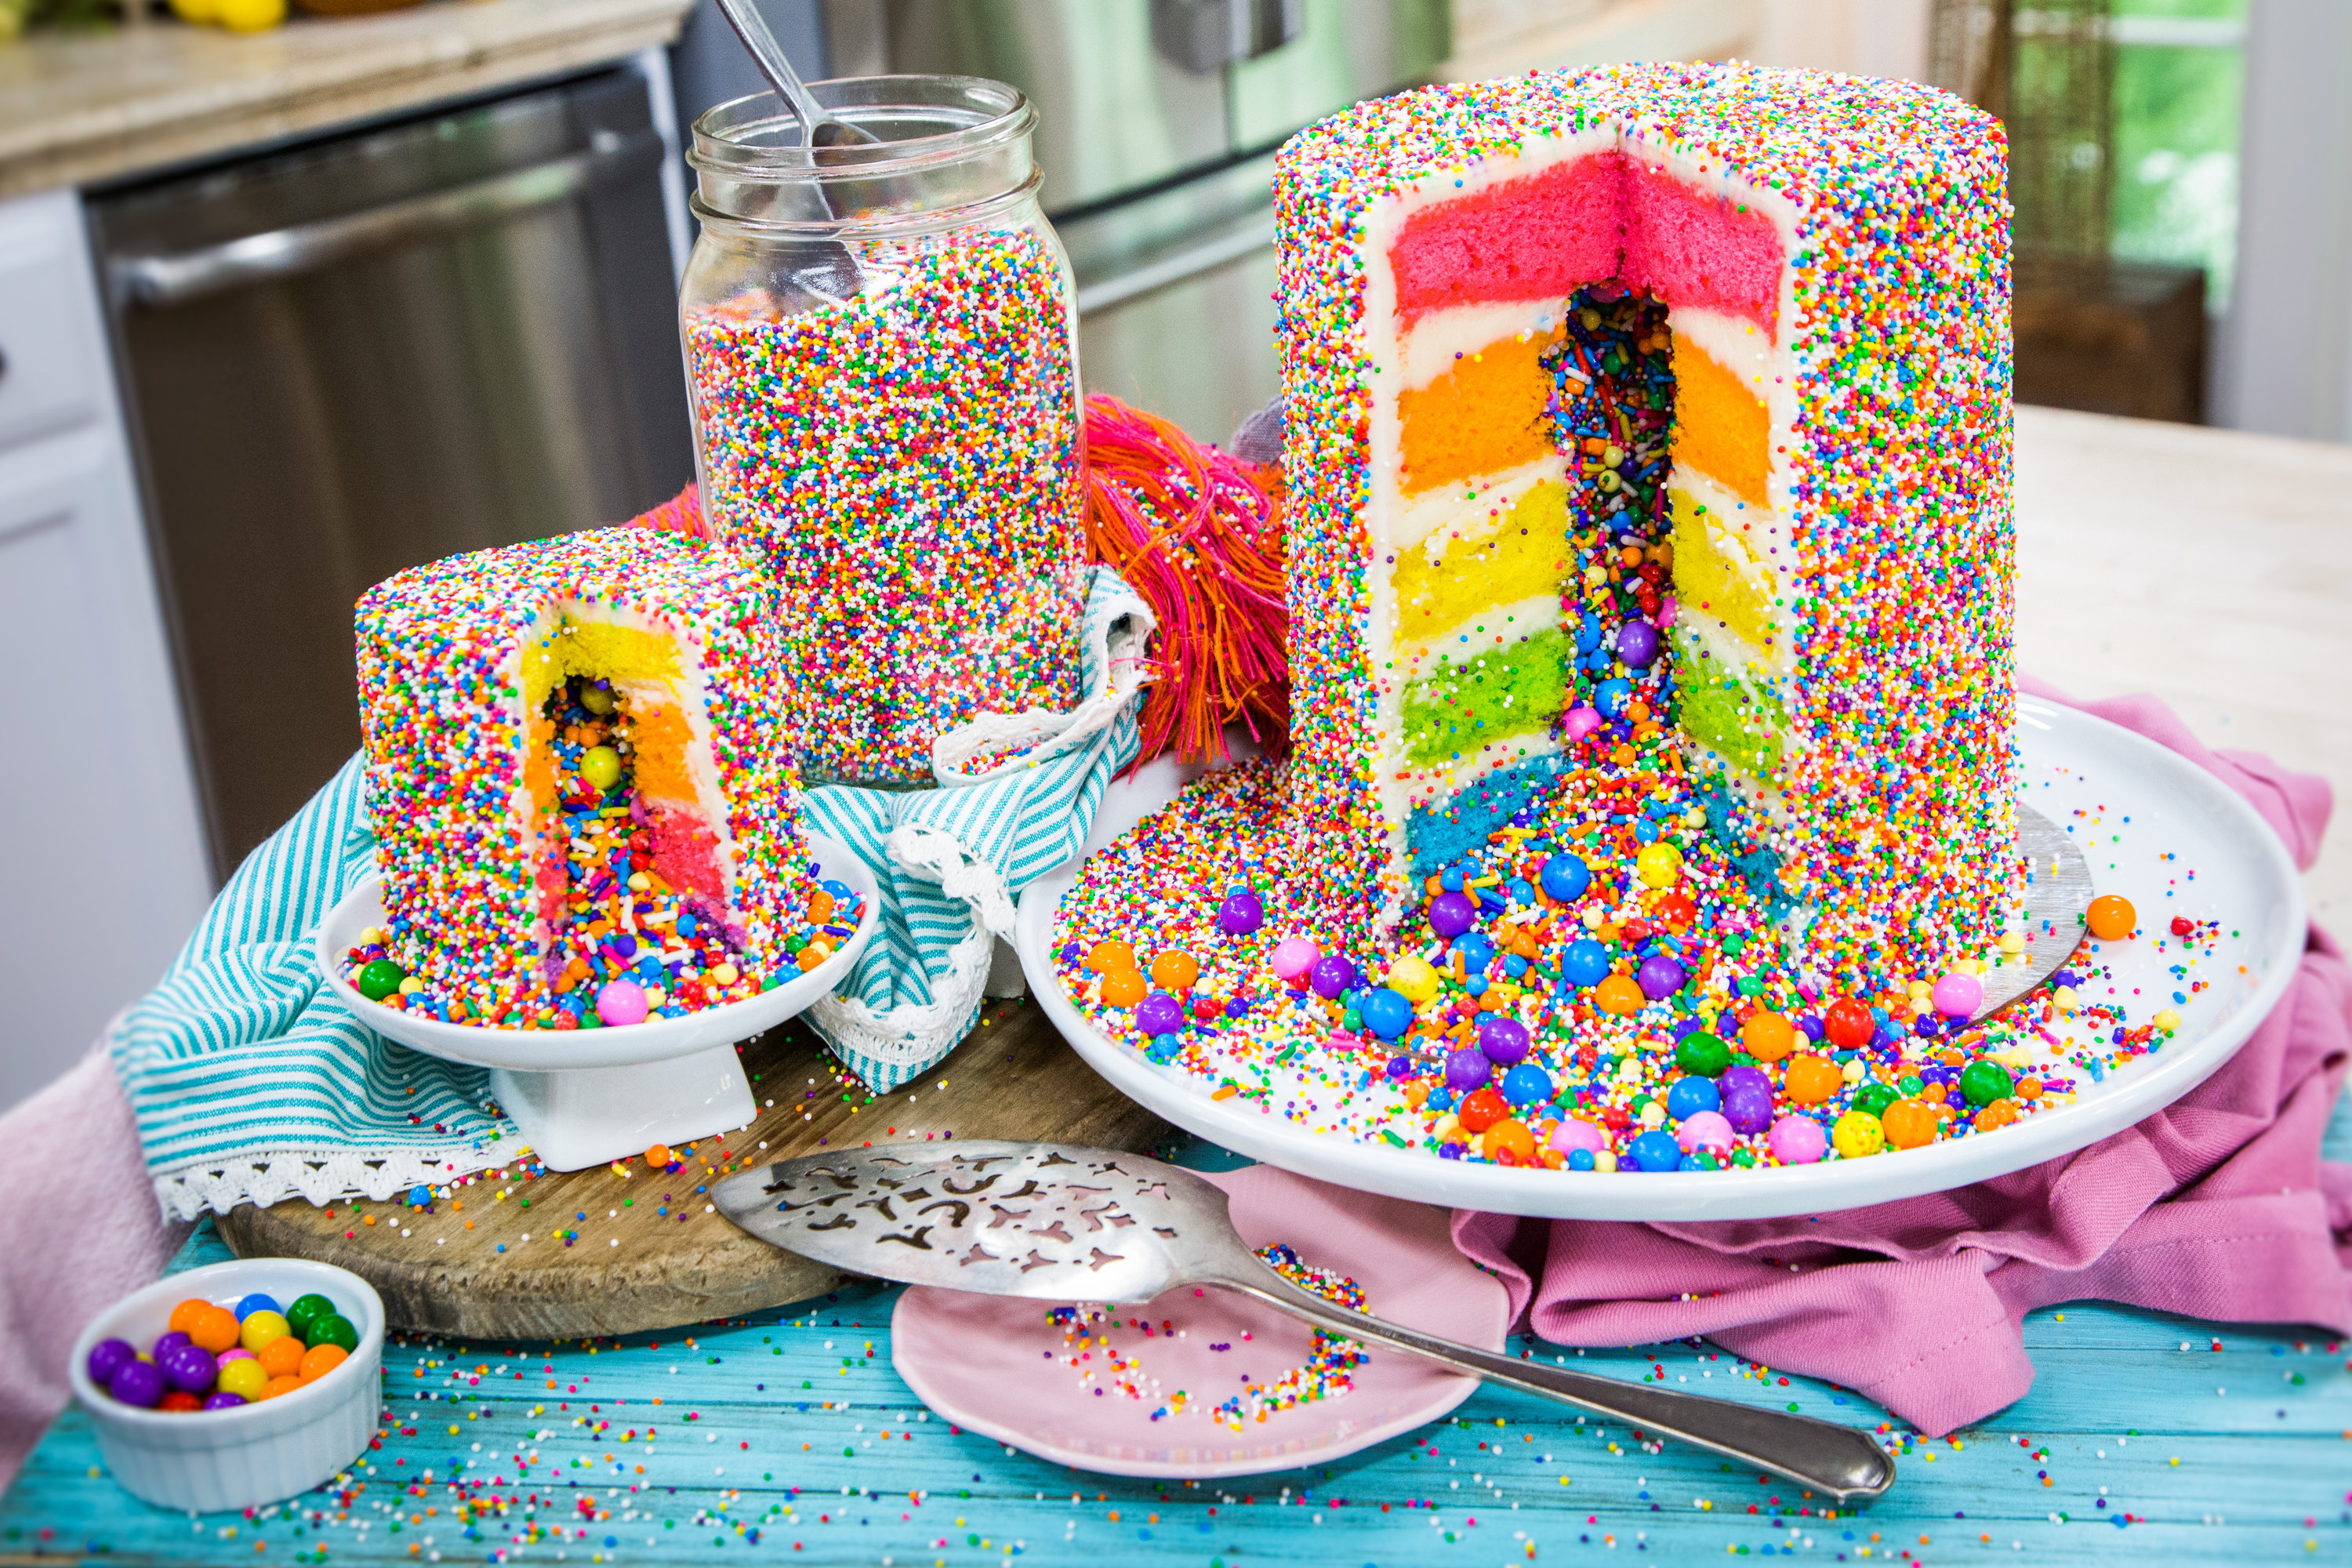 Astonishing Recipes Rainbow Explosion Cake Hallmark Channel Funny Birthday Cards Online Elaedamsfinfo